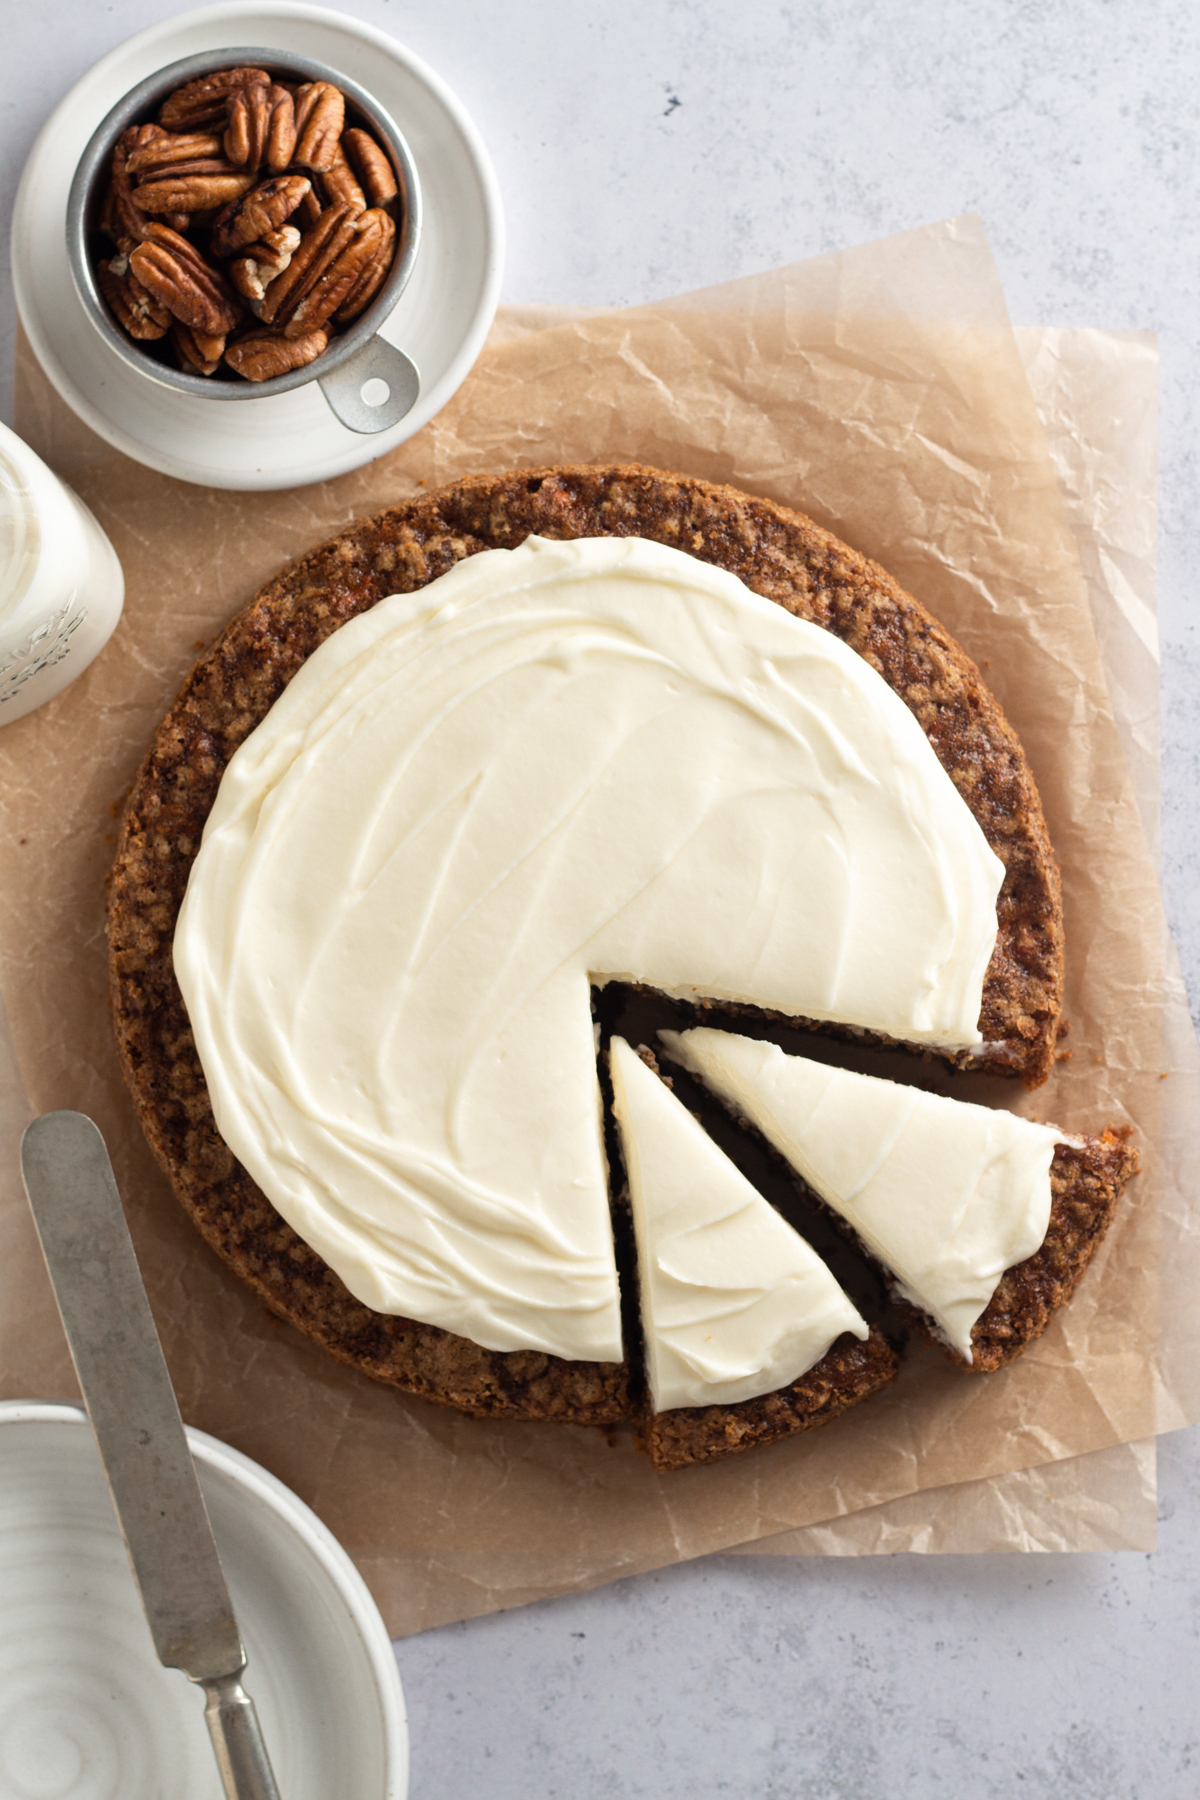 overhead view of a round carrot cake with cream cheese frosting with two cut slices